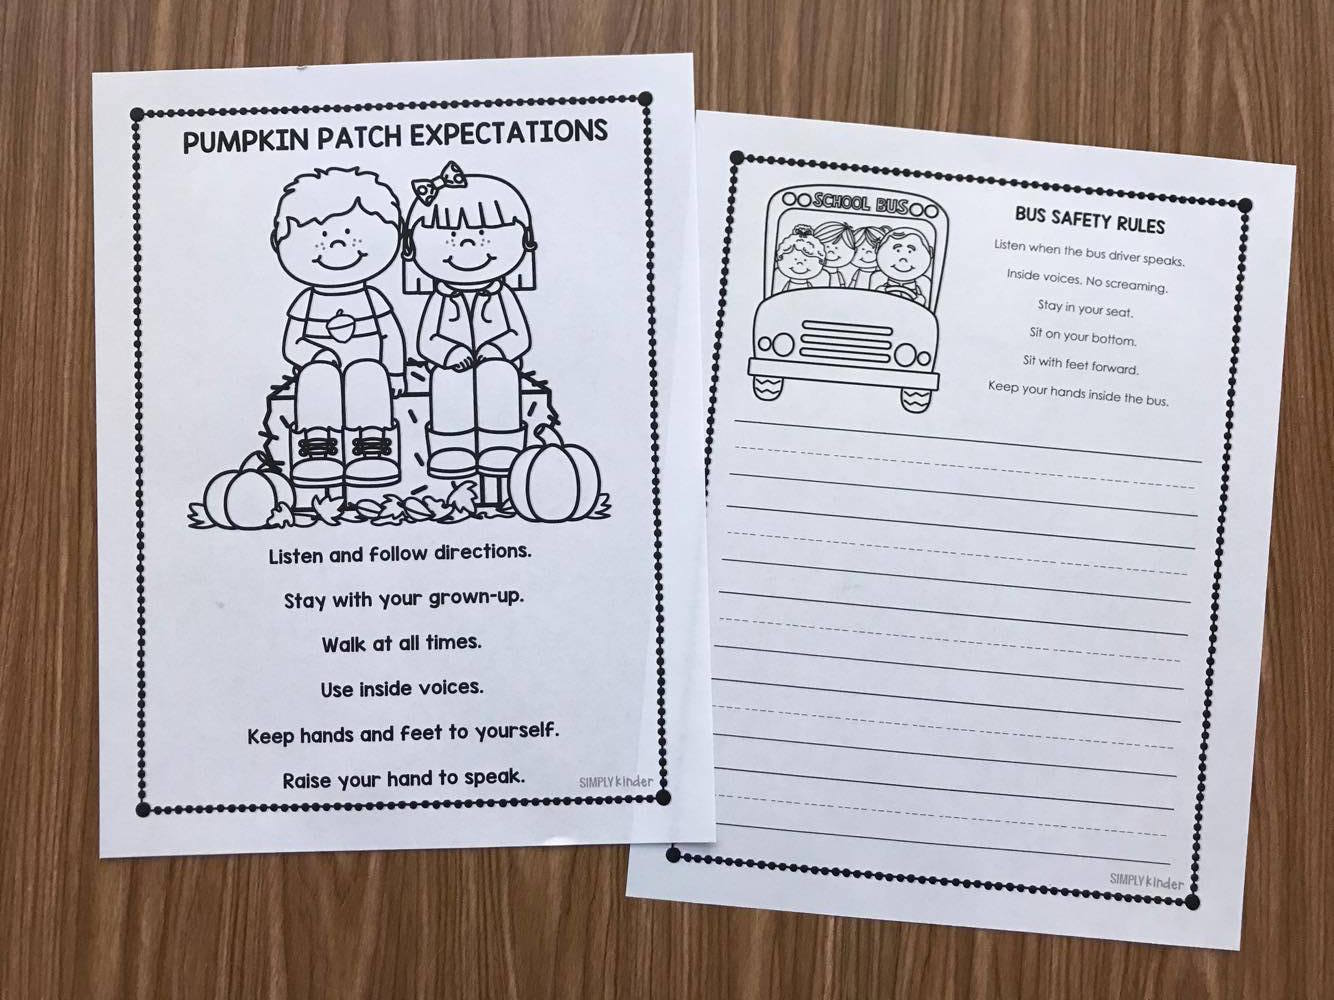 Pumpkin Patch Field Trip Printables from Simply Kinder! Everything from permission slips to reflection activities. Your field trip will be organized and fun!